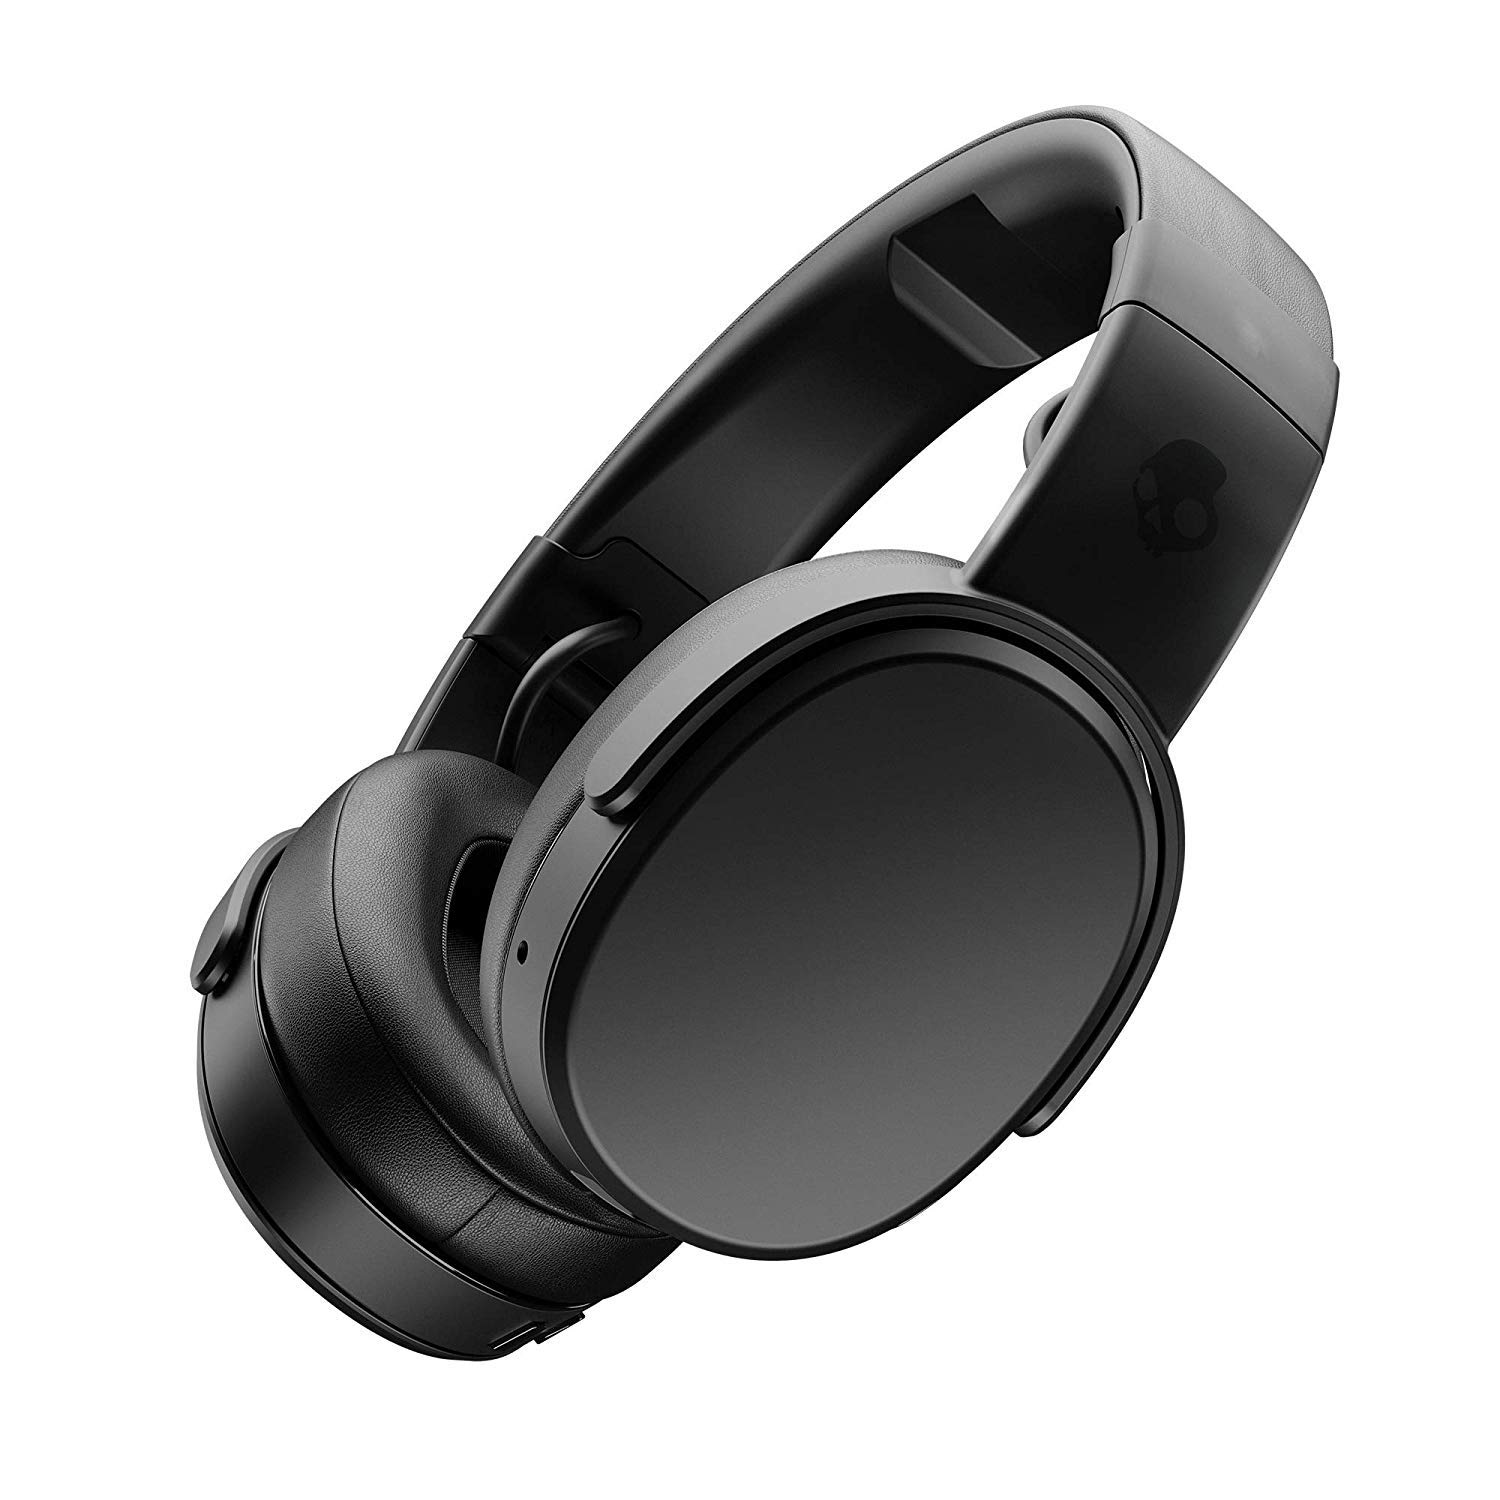 Skullcandy Crusher Bluetooth Wireless Over-Ear Headphone with Microphone, Noise Isolating Memory Foam, Adjustable and Immersive Stereo Haptic Bass, Rapid Charge 40-Hour Battery Life, Black by Skullcandy